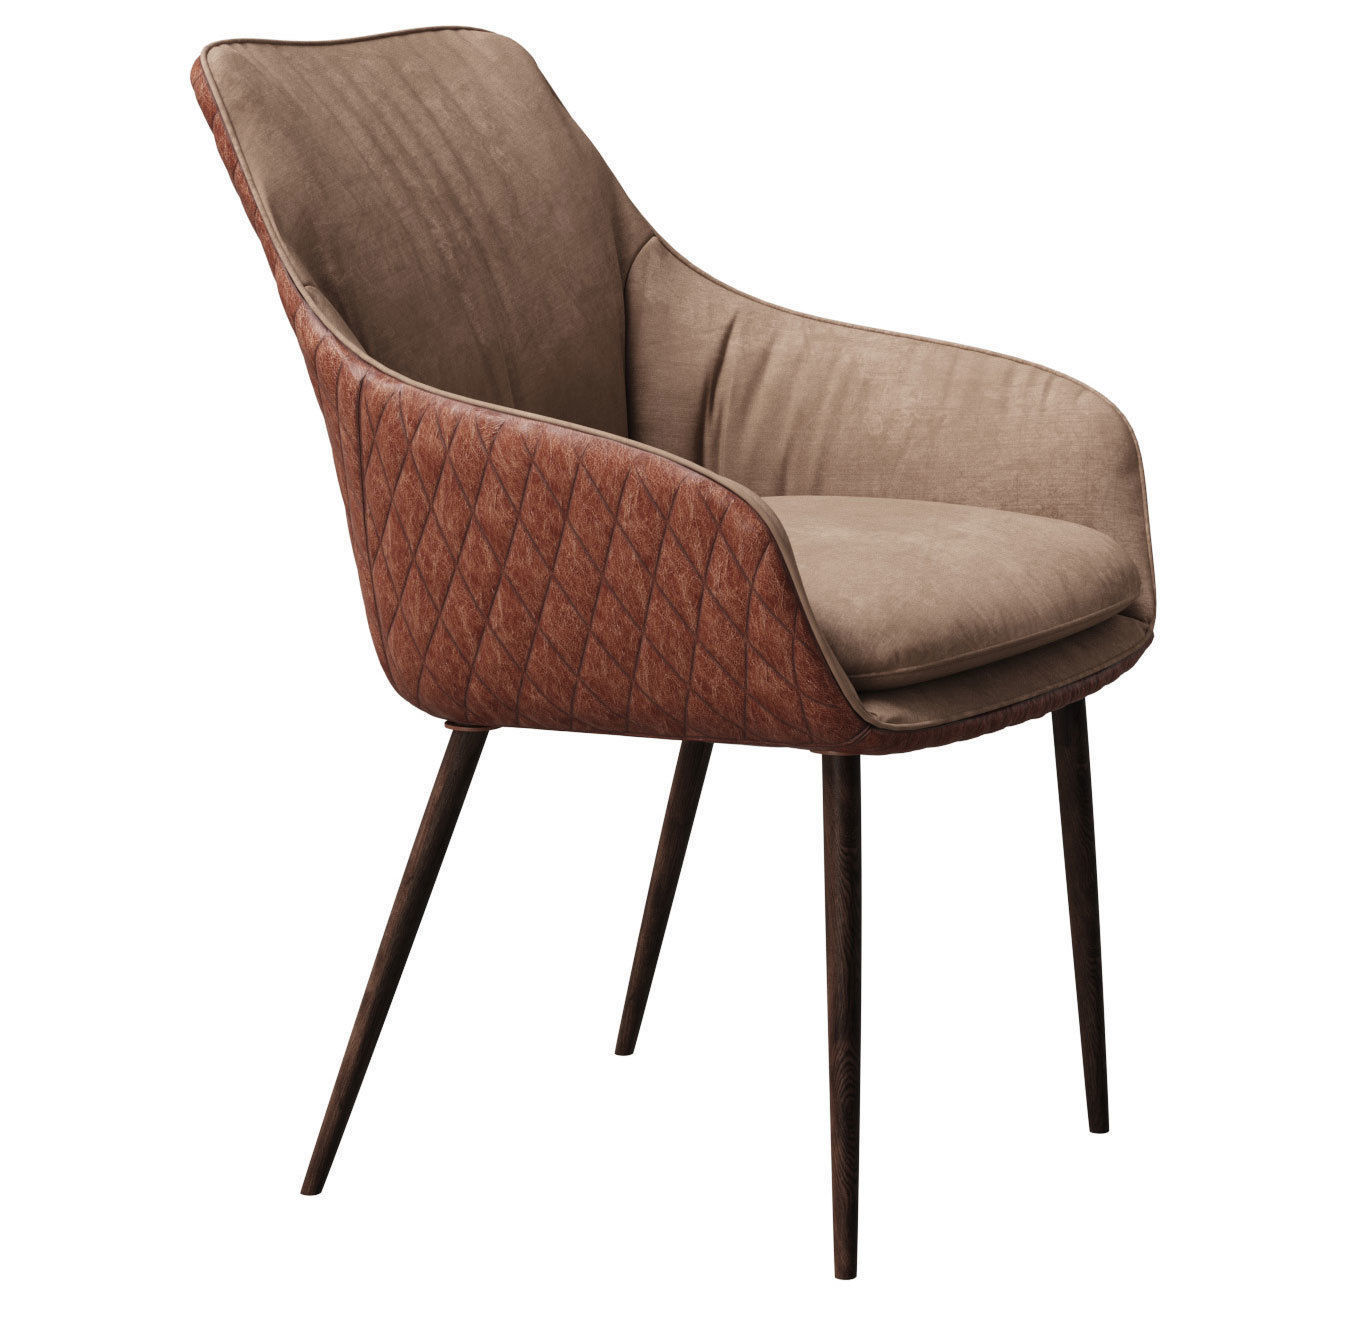 ... Chair Chrissy Pu By Richmond And Aged Table With Table Setting 3d Model  Max Obj Mtl ...